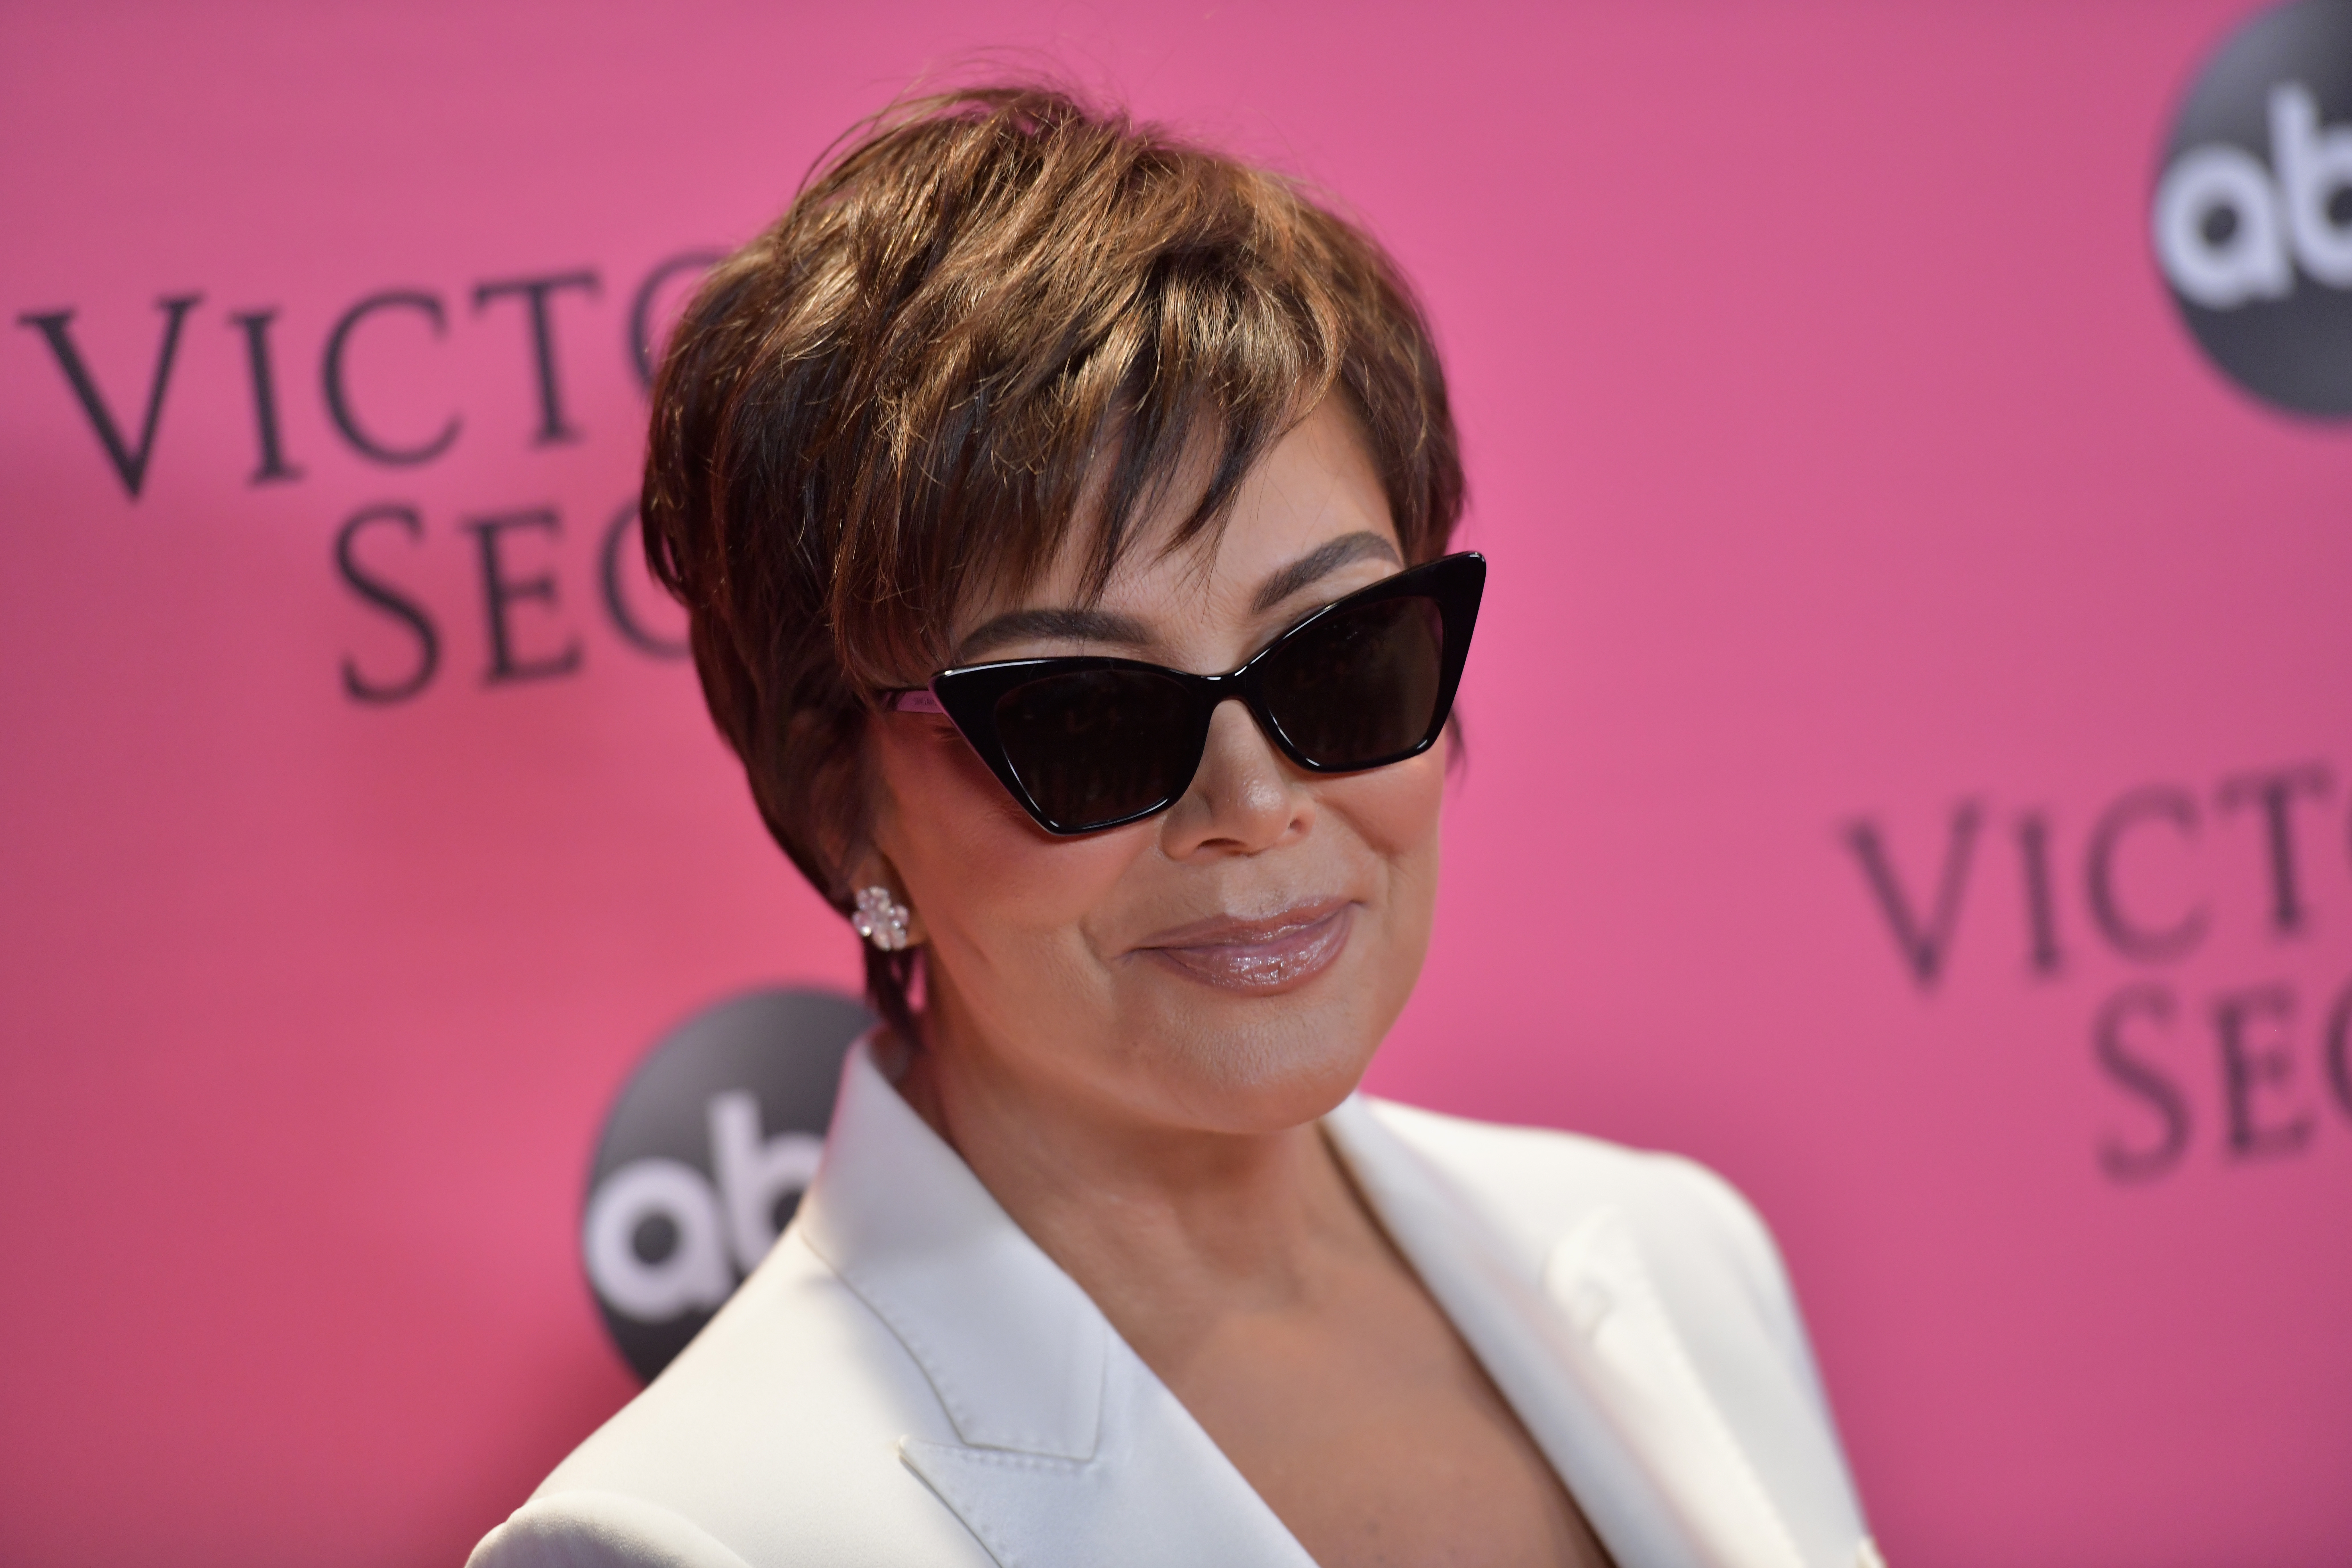 abec6b46813 There s A Reason Kris Jenner Has Been Covering Up With Sunglasses And It s  Surprisingly Sad